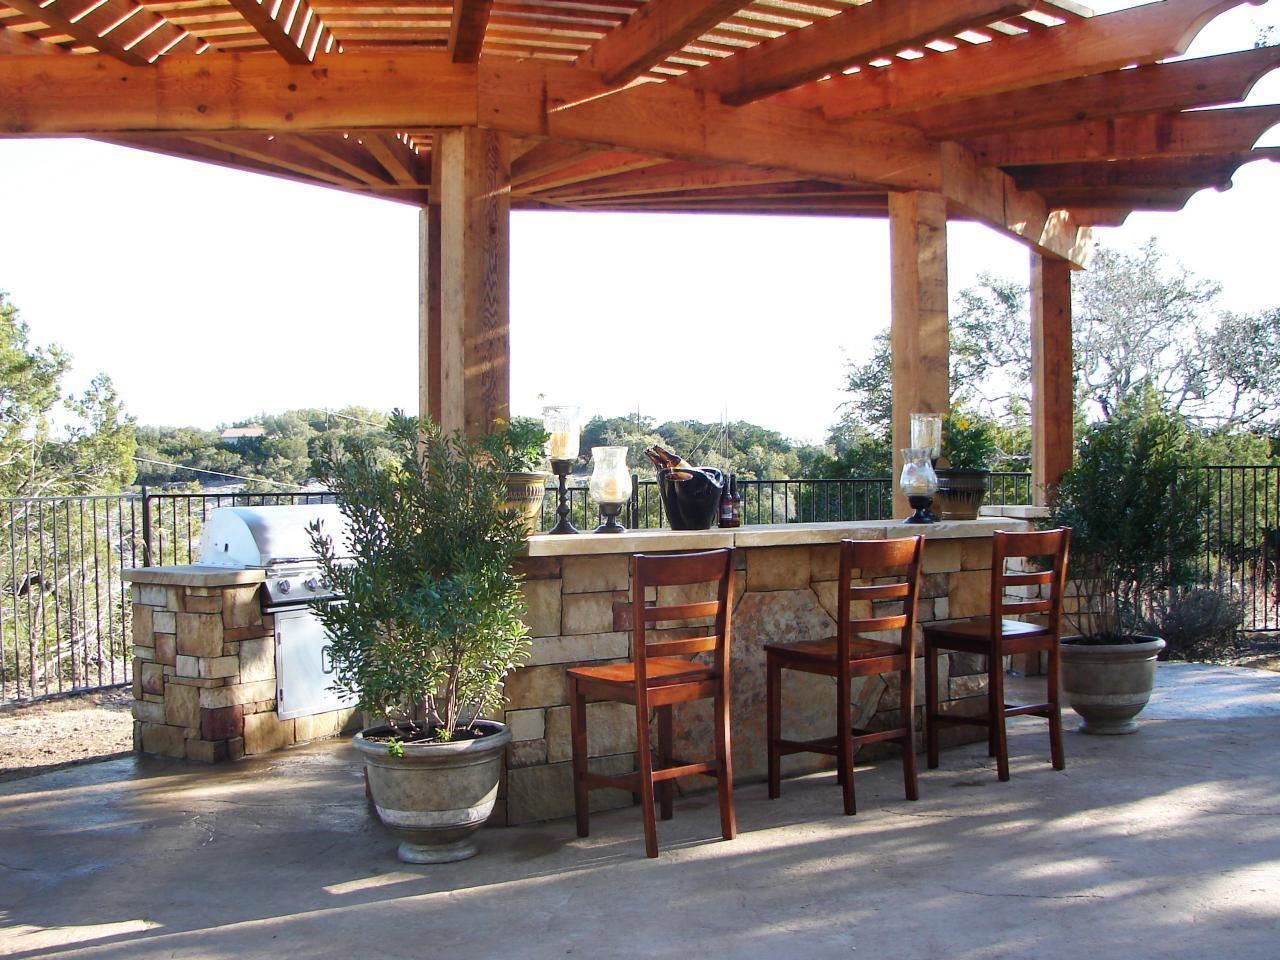 curved pergolas designs - Google Search | Outdoor kitchen ... on Curved Patio Ideas id=39887